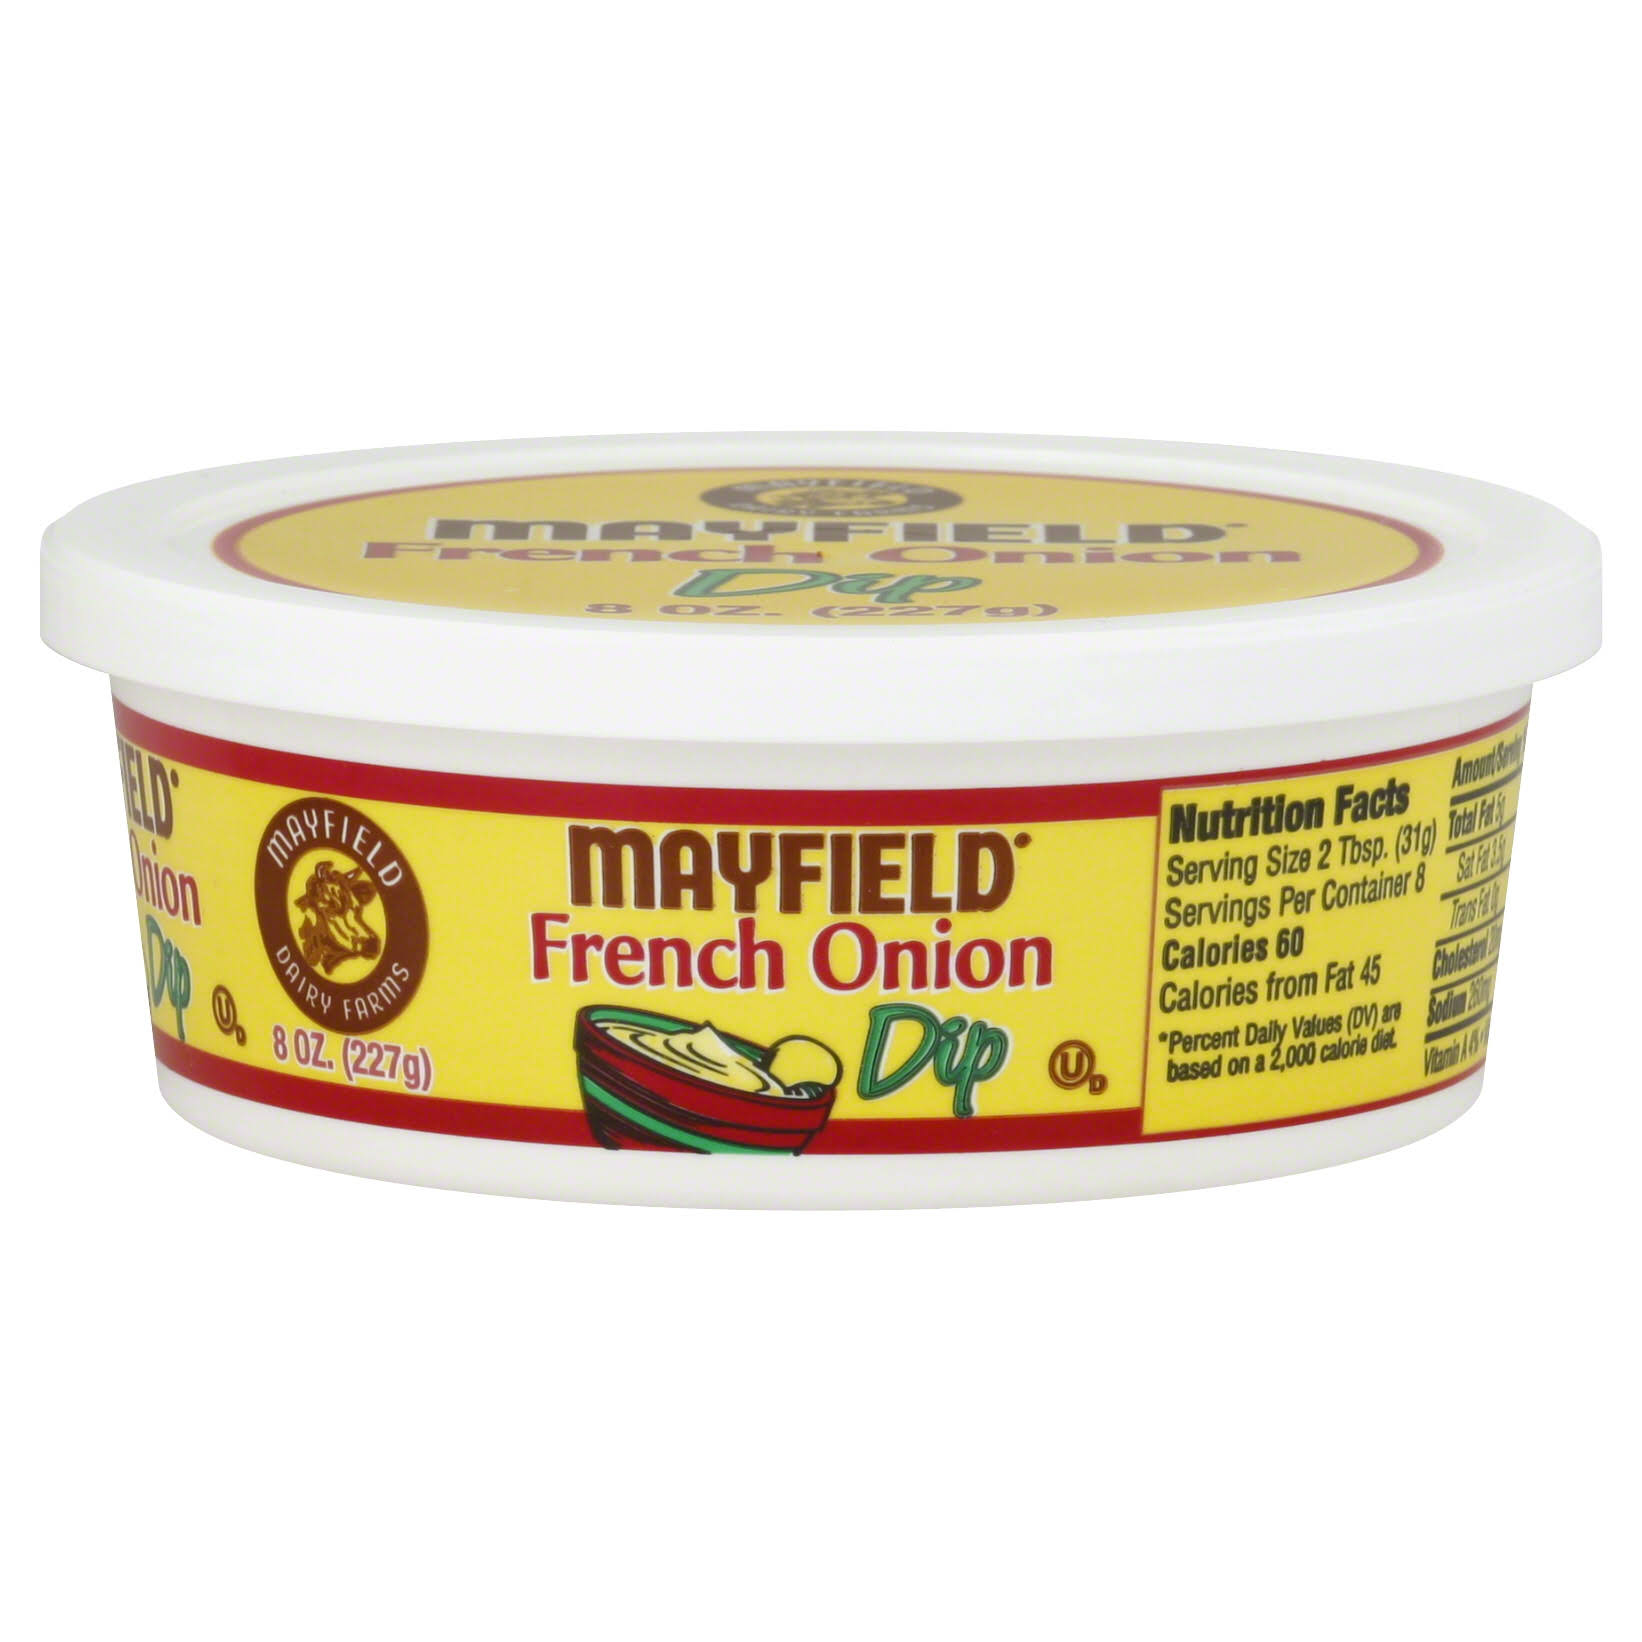 Mayfield Dip, French Onion - 8 oz